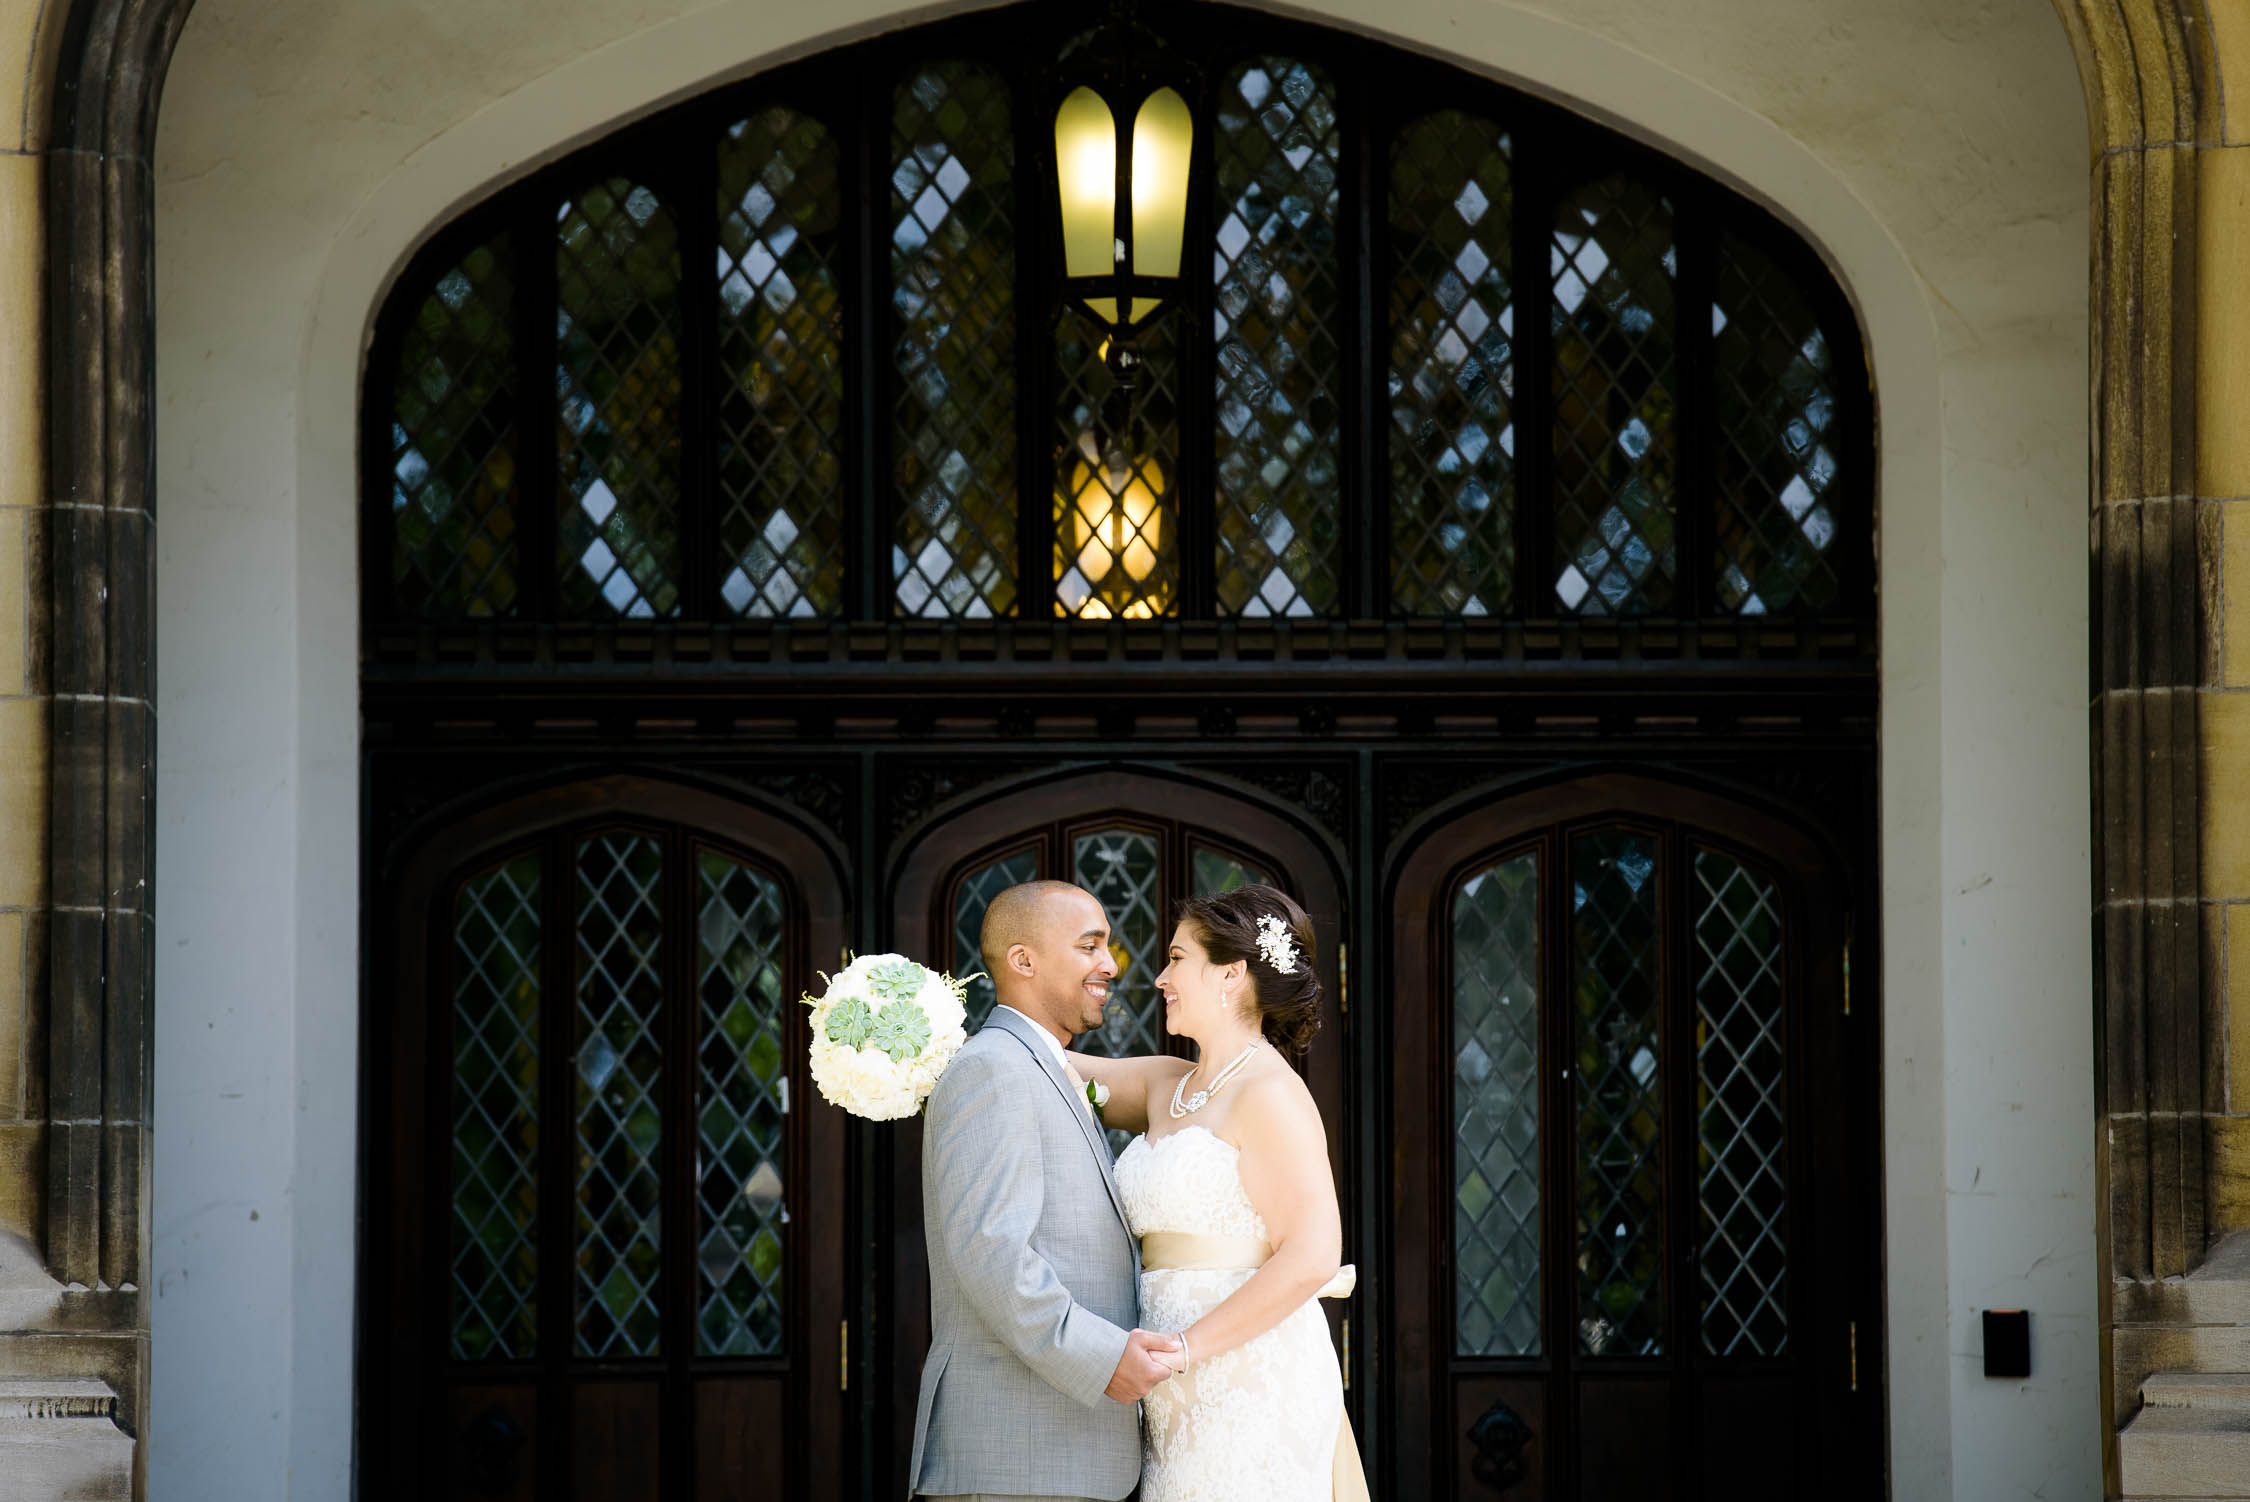 Wedding day portrait near the quad of the University of Chicago.